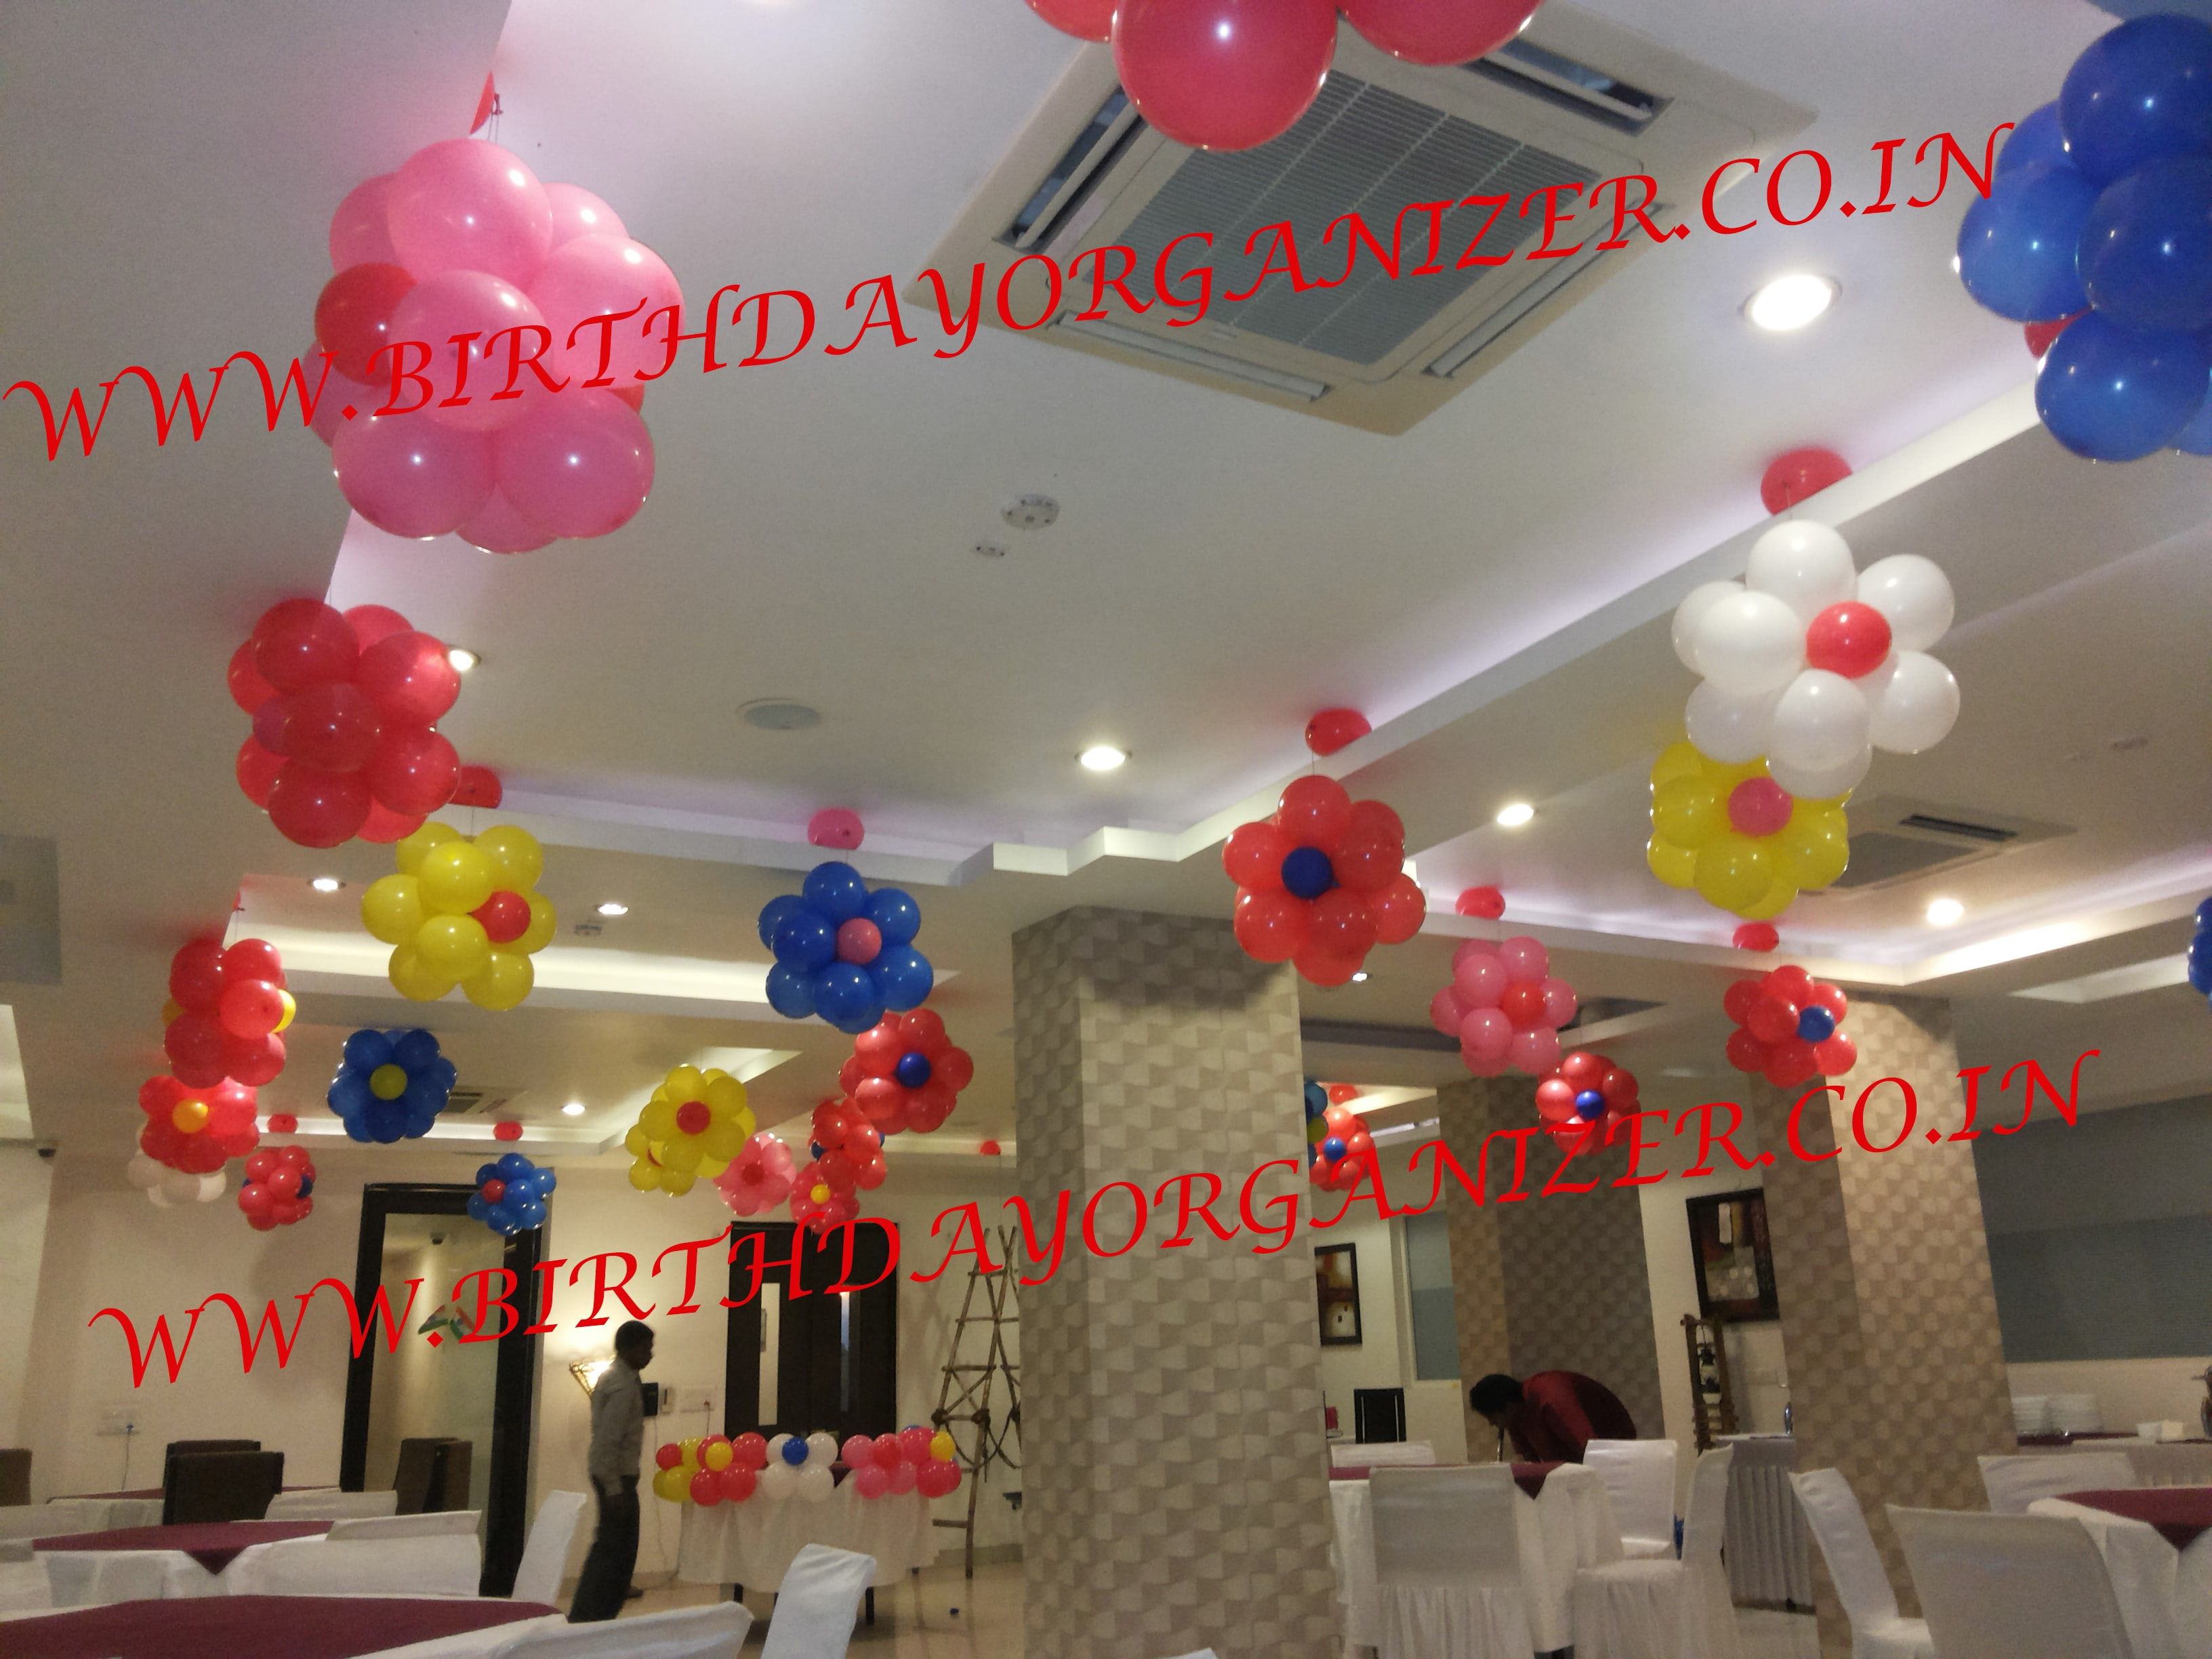 balloon decoration for birthday party ideas in noida, balloon decoration for birthday party ideas in delhi ncr, balloon decoration for birthday party, balloon decoration for birthday party planner